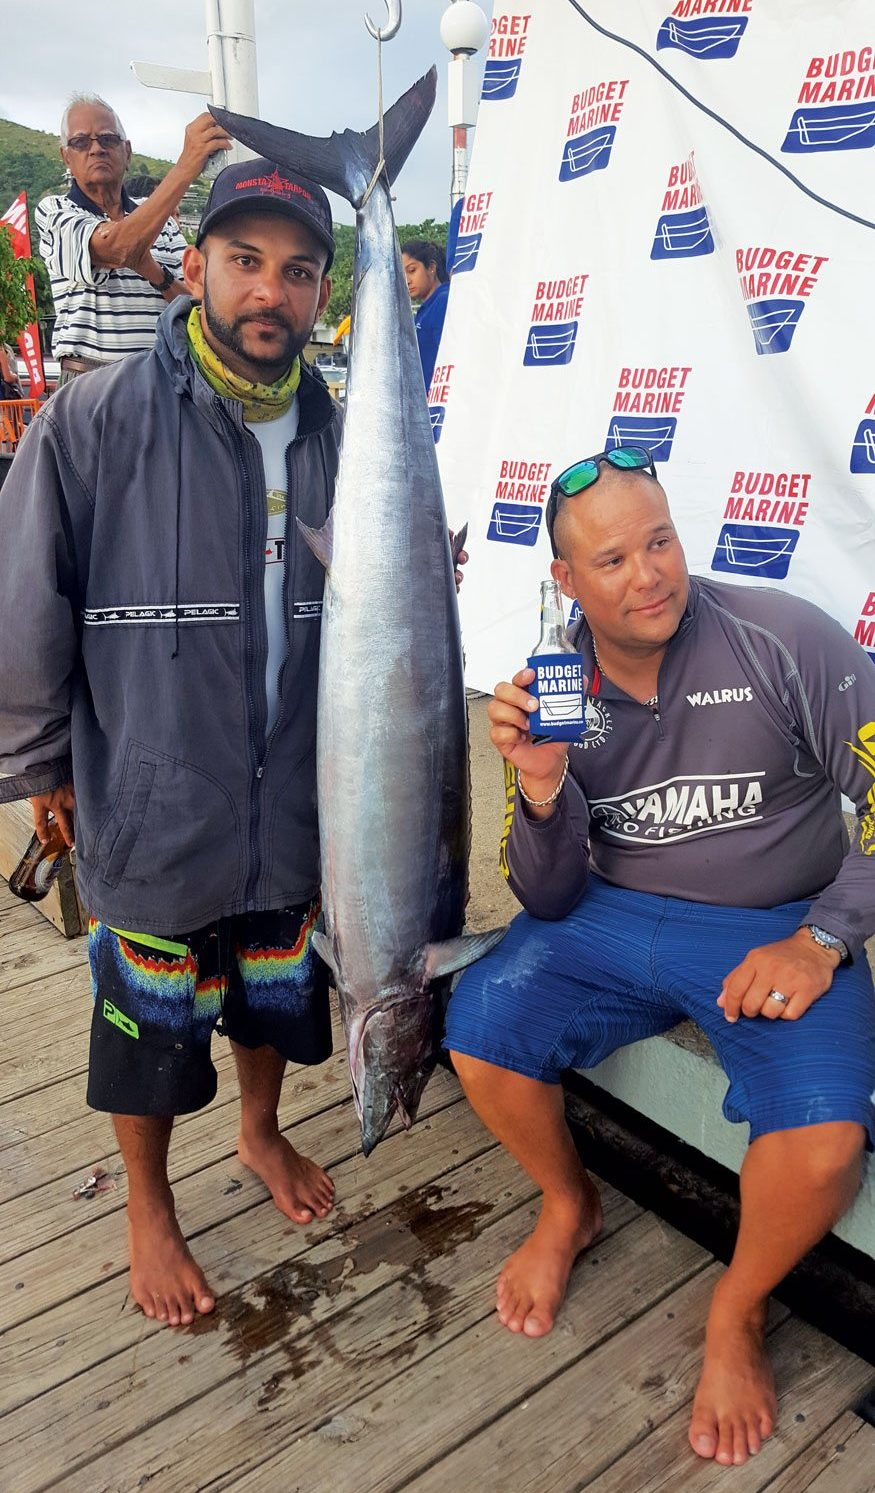 Best Angler and winner of the tournament Captain Dominic Wallace (right) of Roller Troller